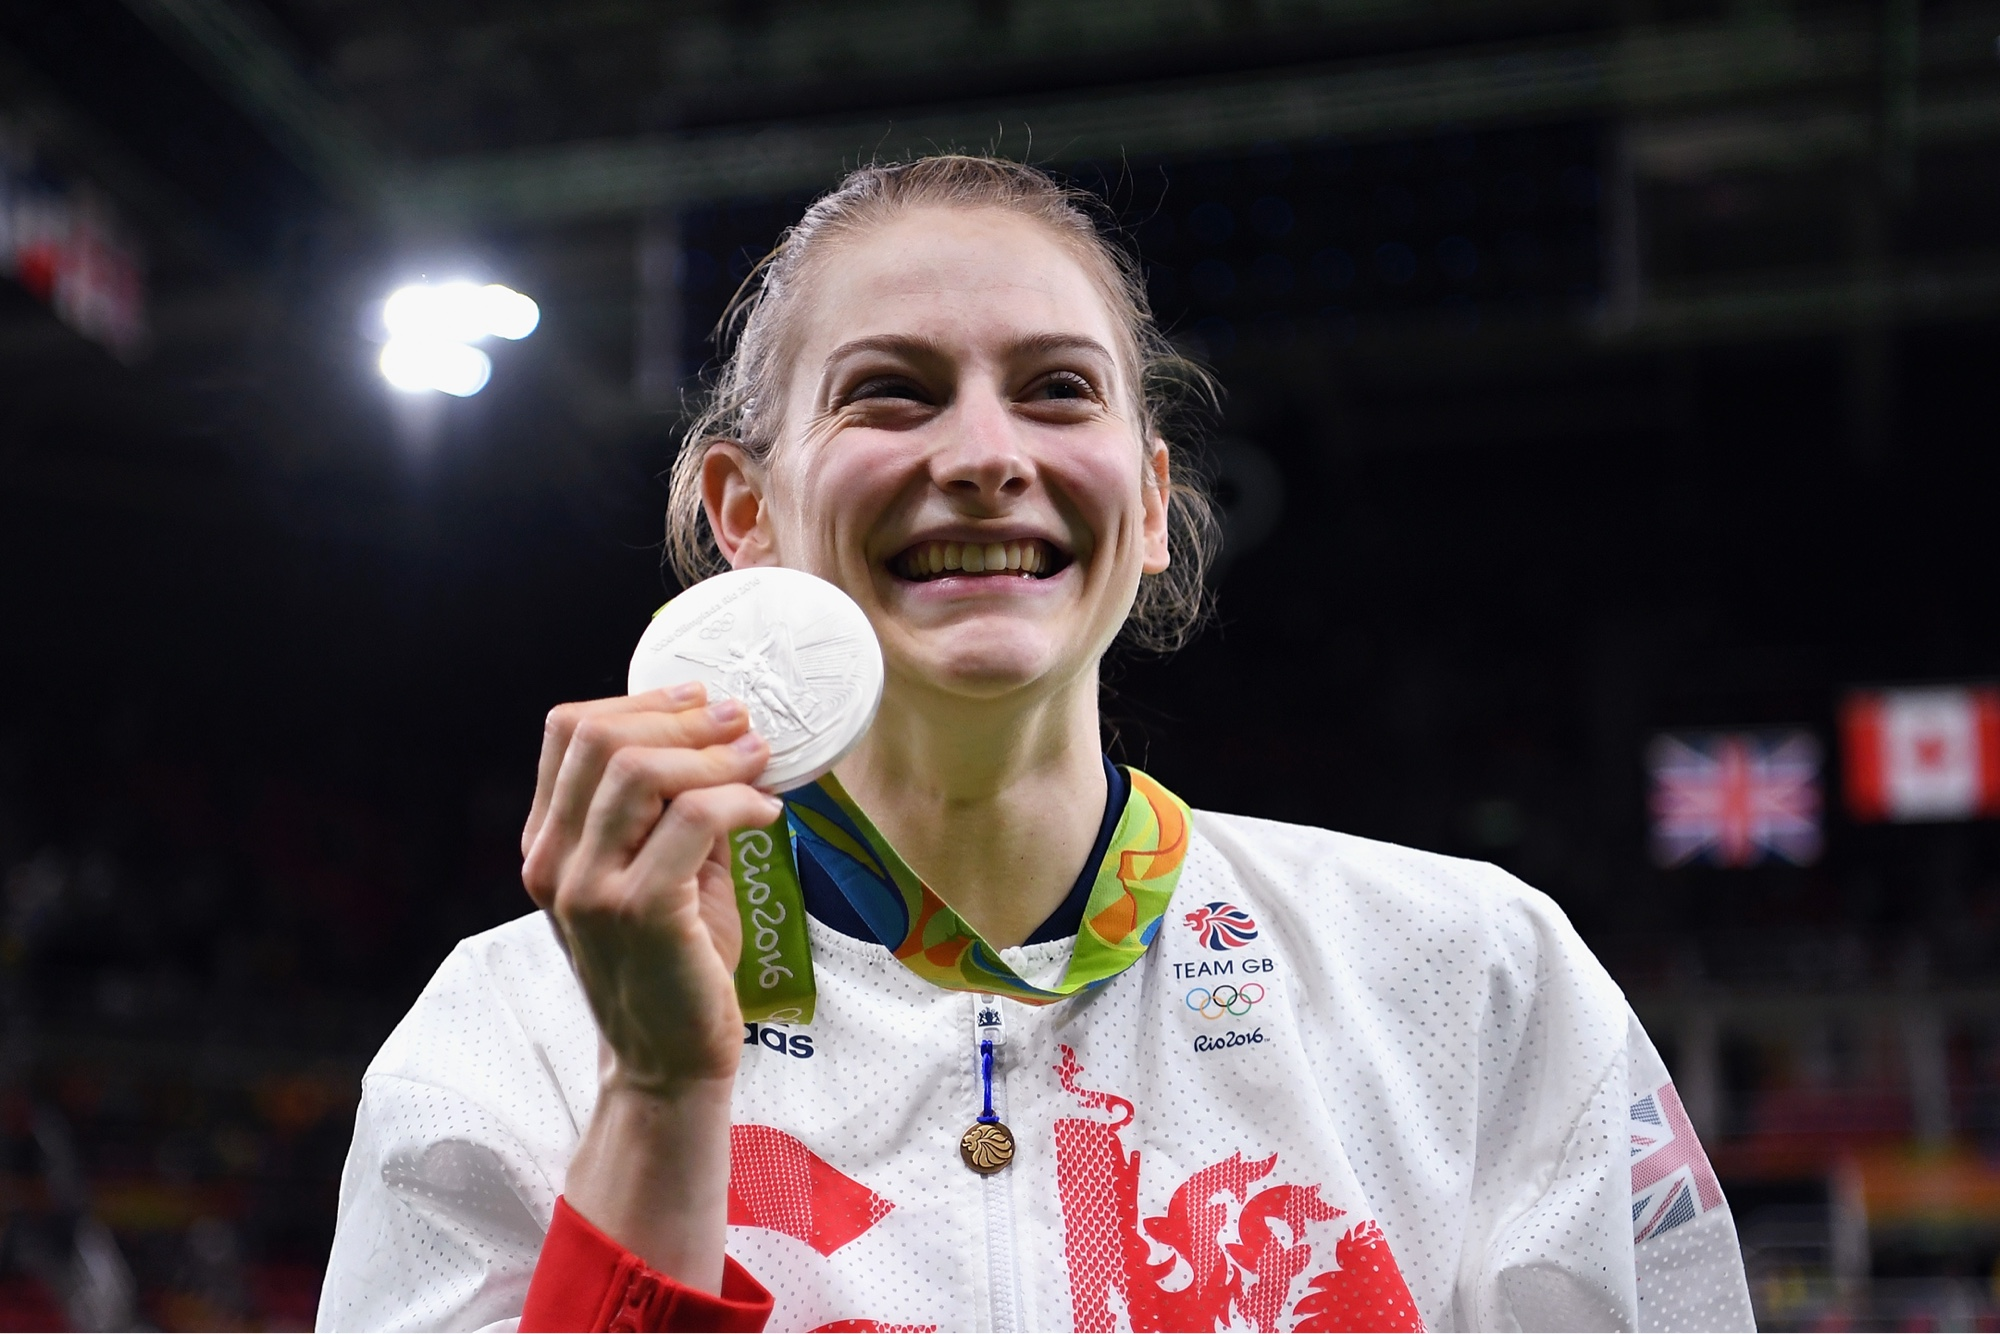 Bryony Page making history with first ever medal in Trampoline for Team GB